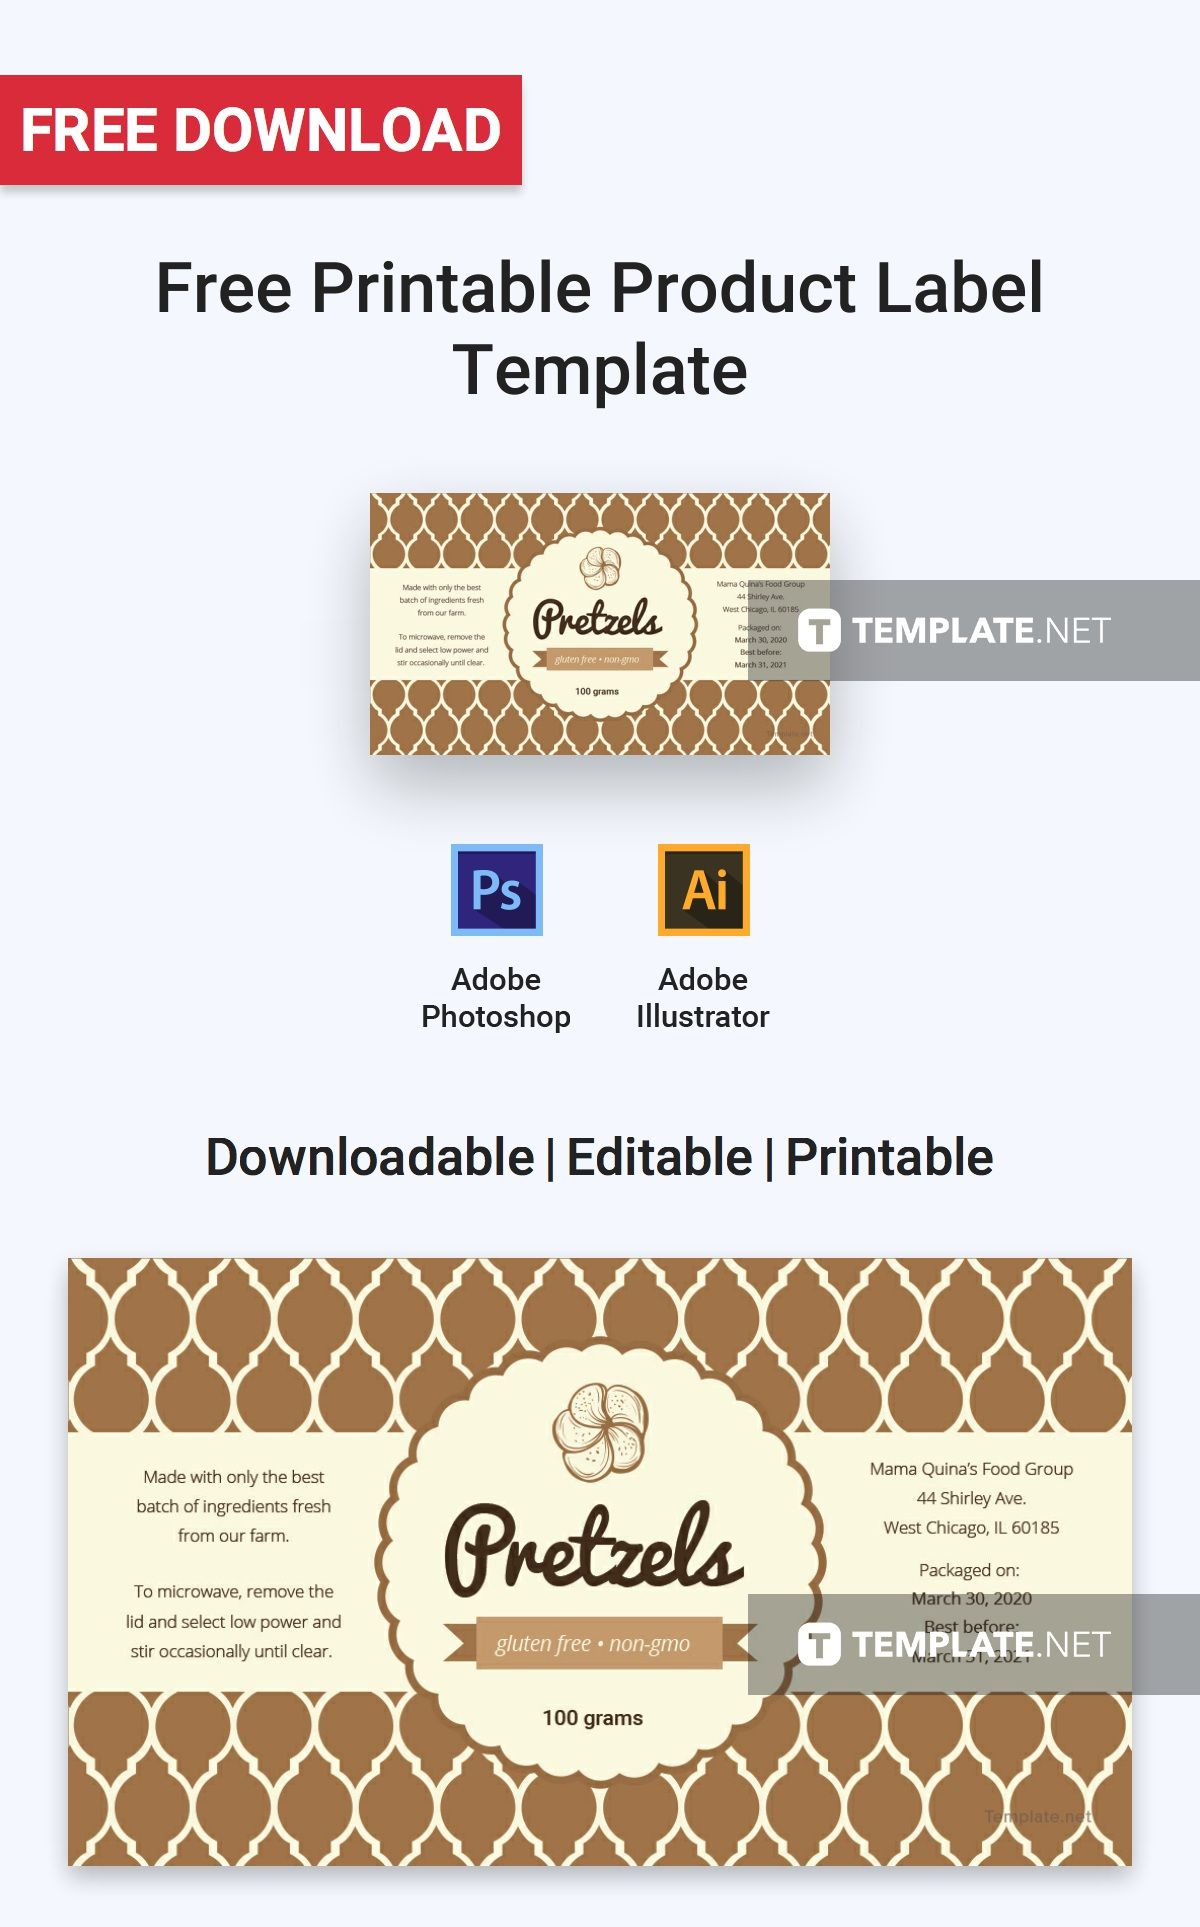 Free Printable Product Label Label Templates Designs 2019